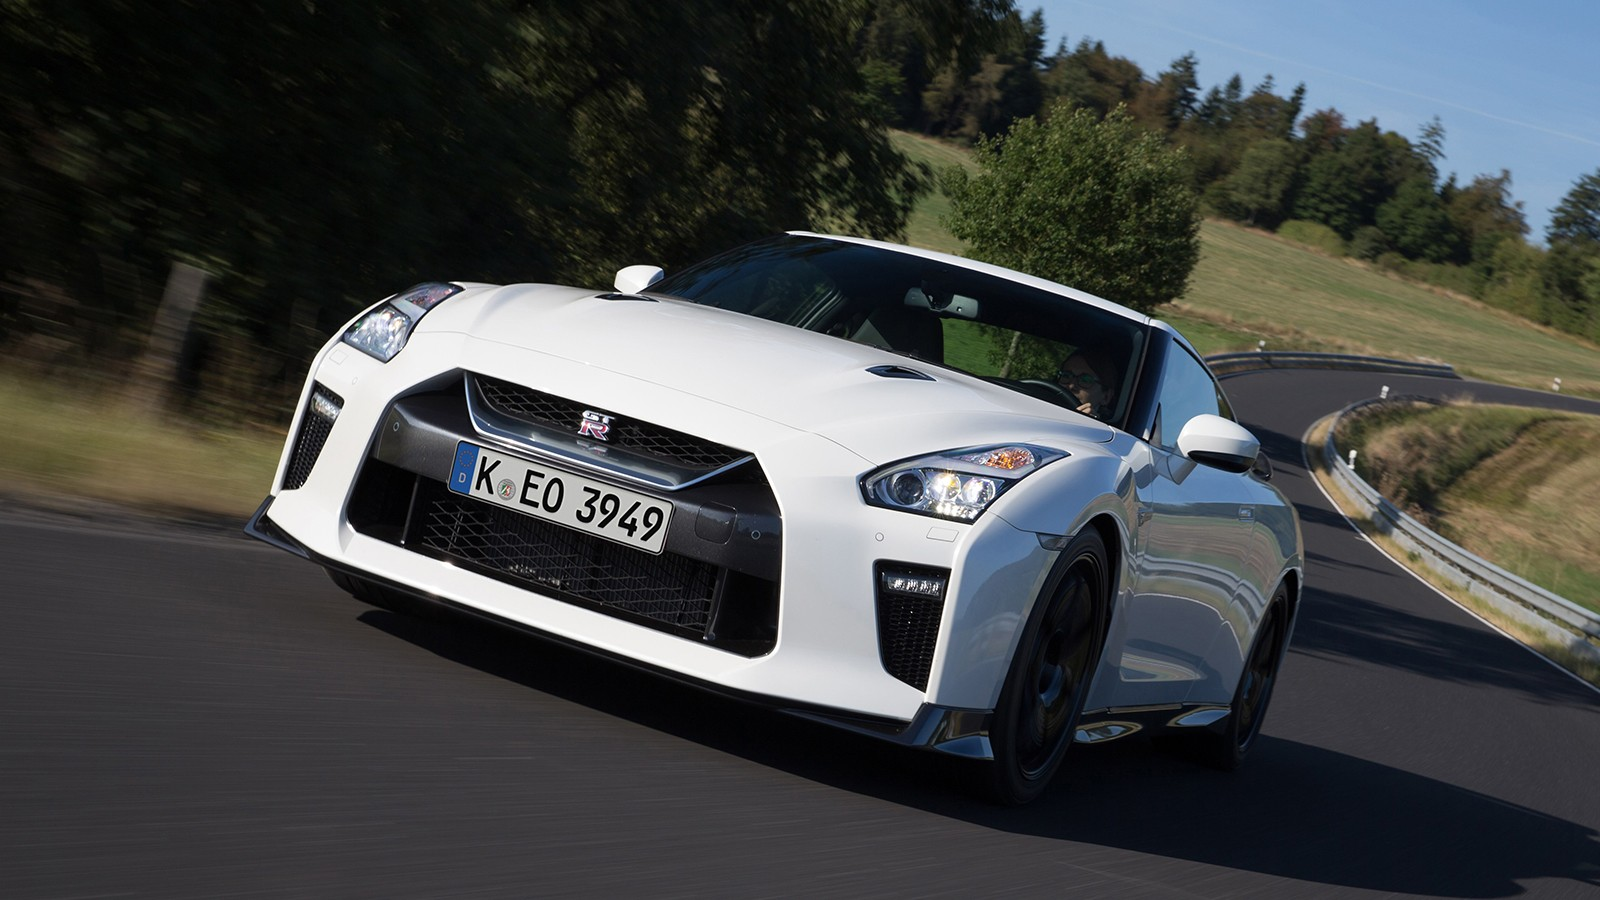 Nissan reveals full specs and pricing for thrilling new GT-R Tra